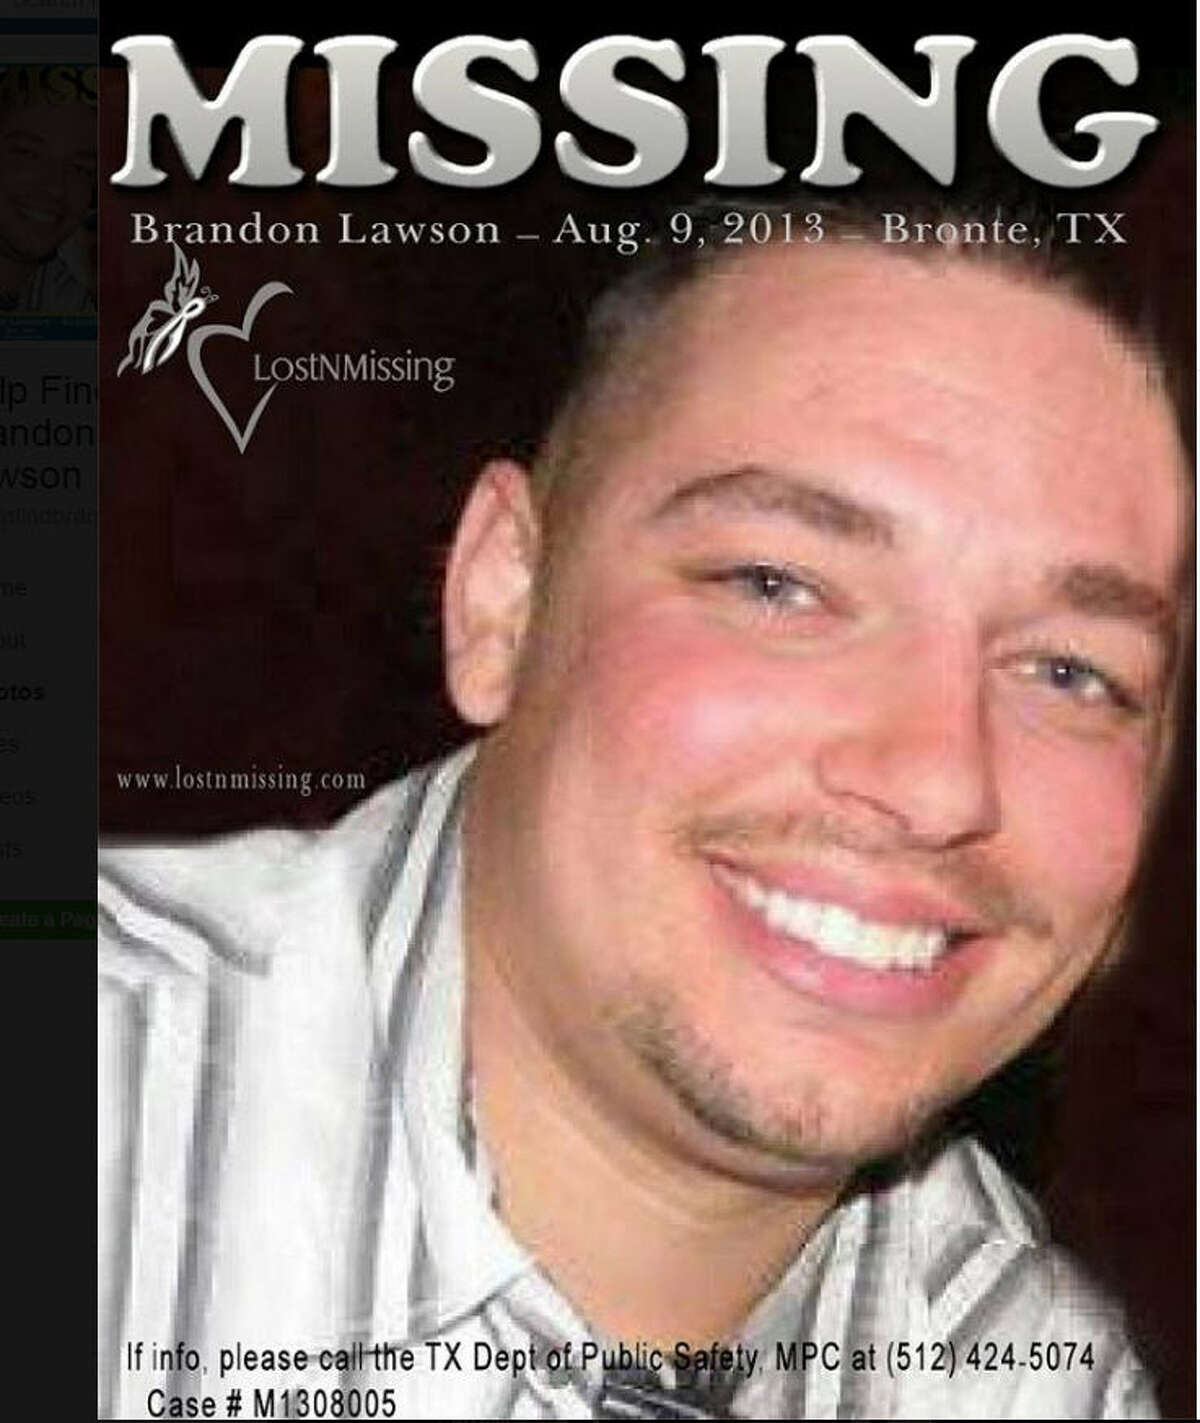 Where is Brandon Lawson? Brandon Lawson, a San Angelo resident, was last heard from in August 2013 when he called 911 to report his truck had broken down near Bronte, Texas, and he had gotten into an altercation with at least two men in a field on the side of the road. Click through to learn more about his case.